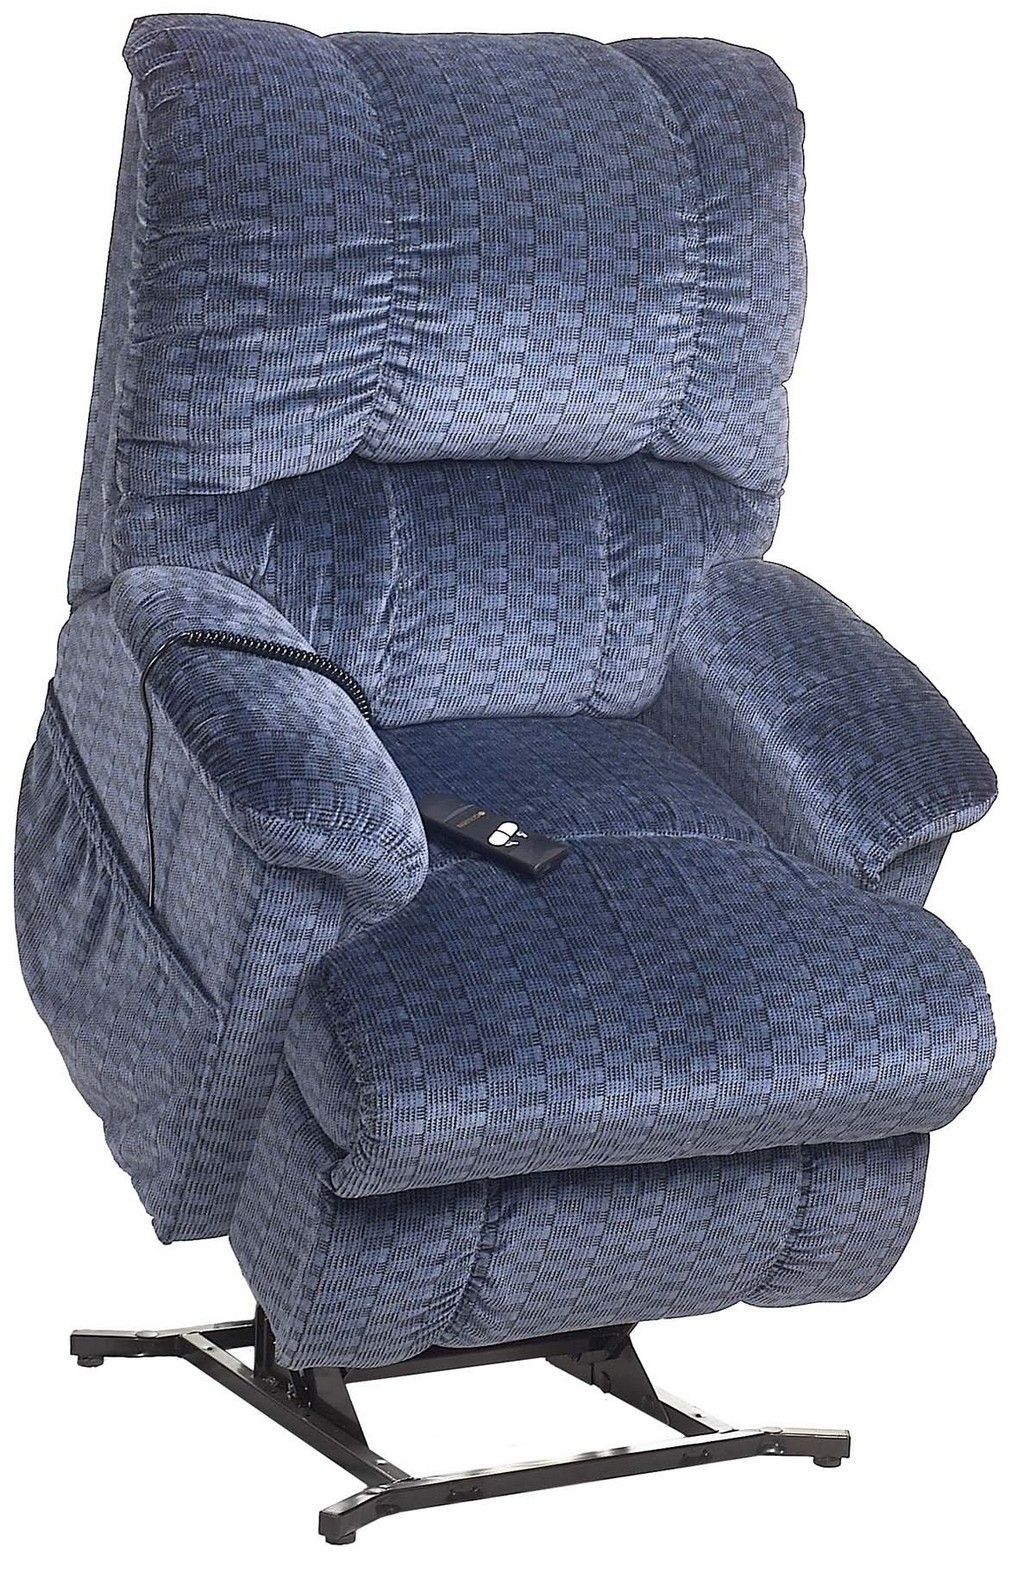 help paying for lift chair, freedom lift chair, lift chair recliners, pride lift chair parts